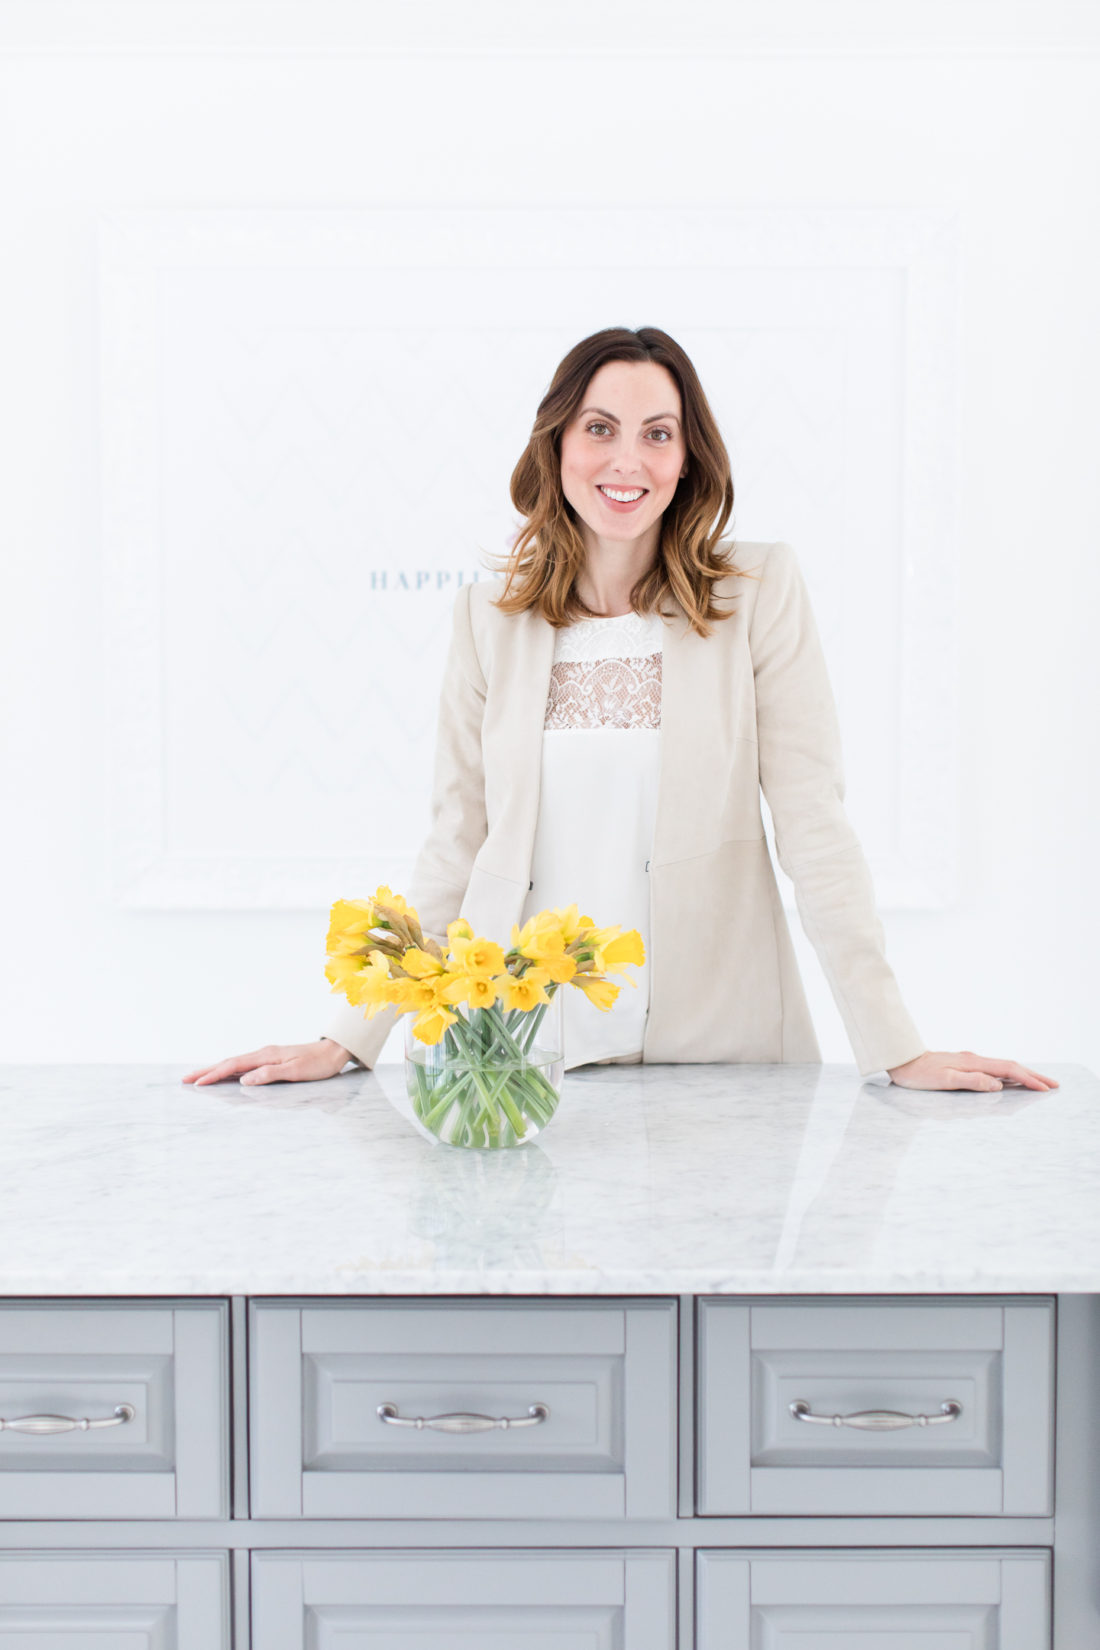 Eva Amurri Martino stands at the marble island in the center of the Happily Eva After studio space